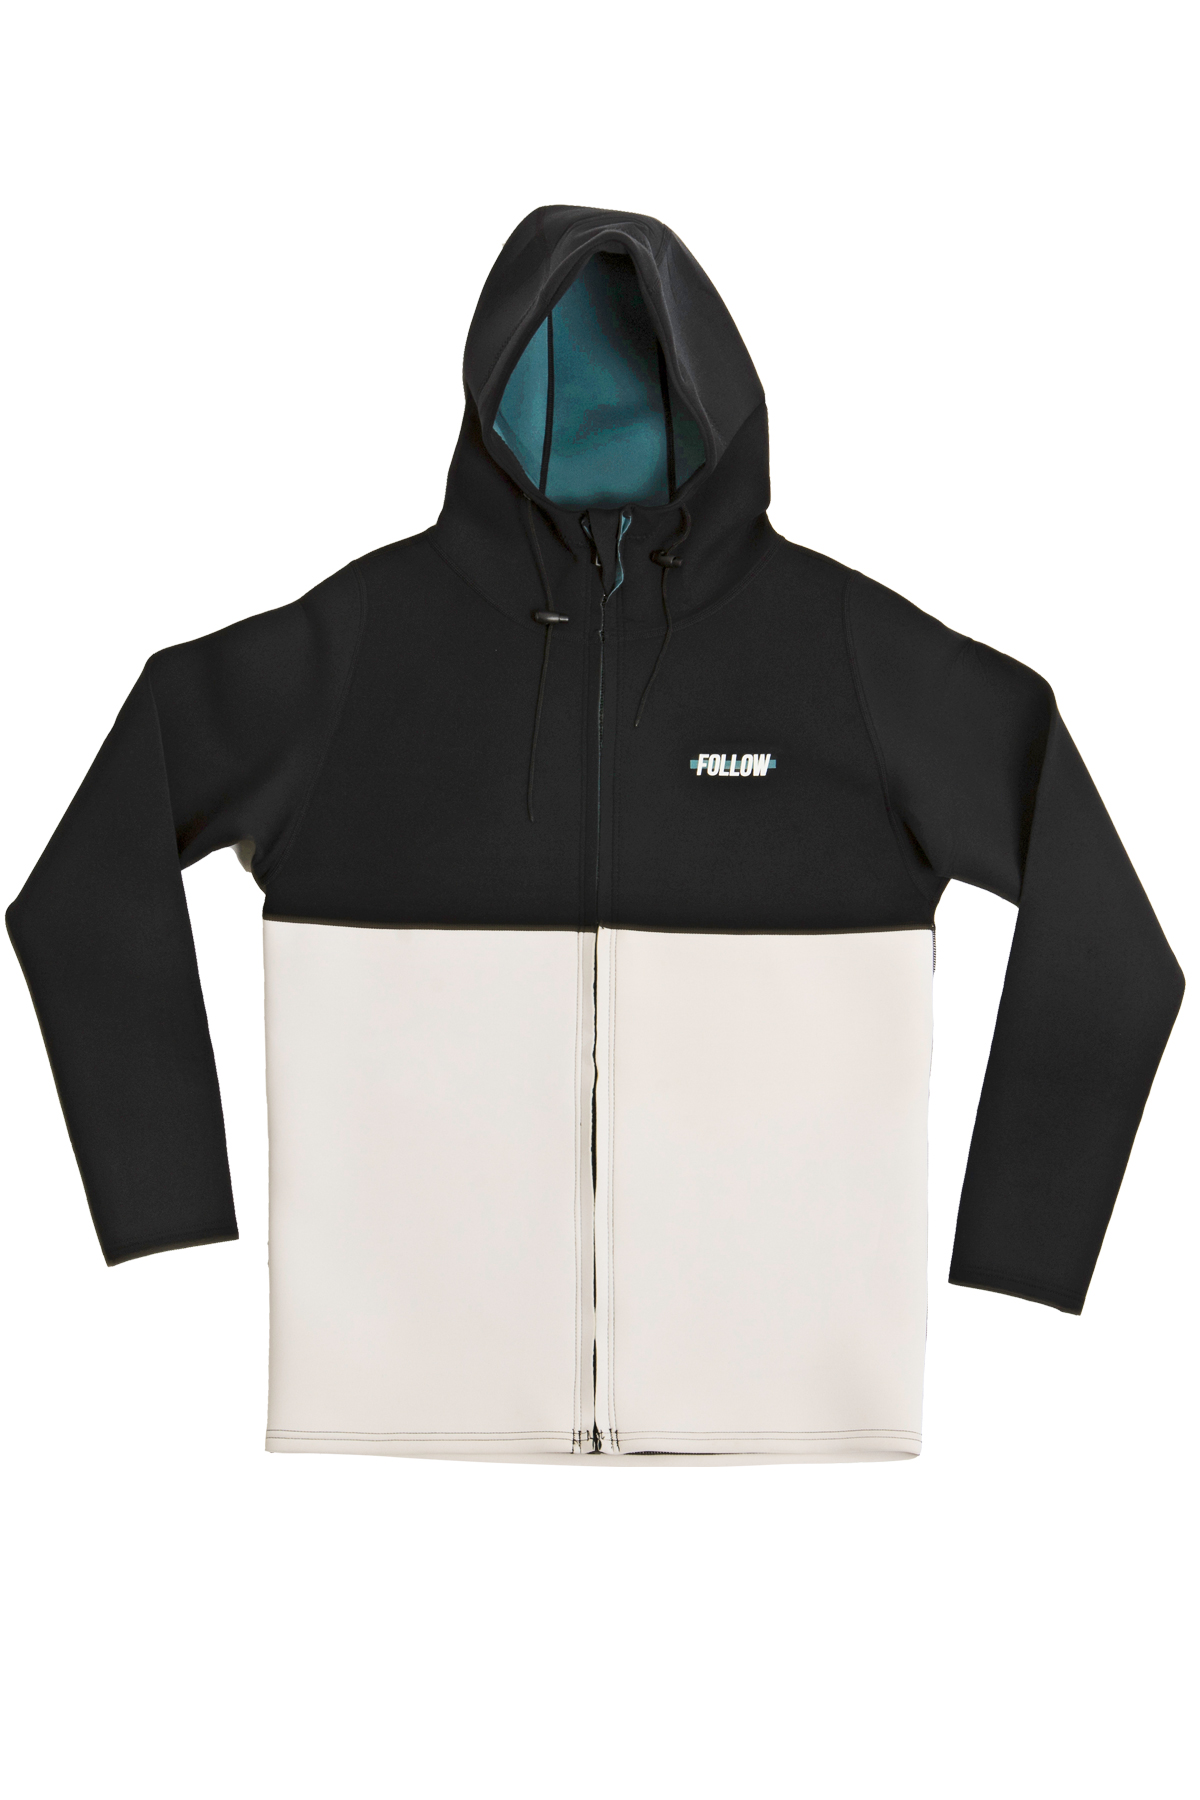 LAYER 3.1 2 NEO ZIP THROUGH JACKET - BLACK FOLLOW 2019